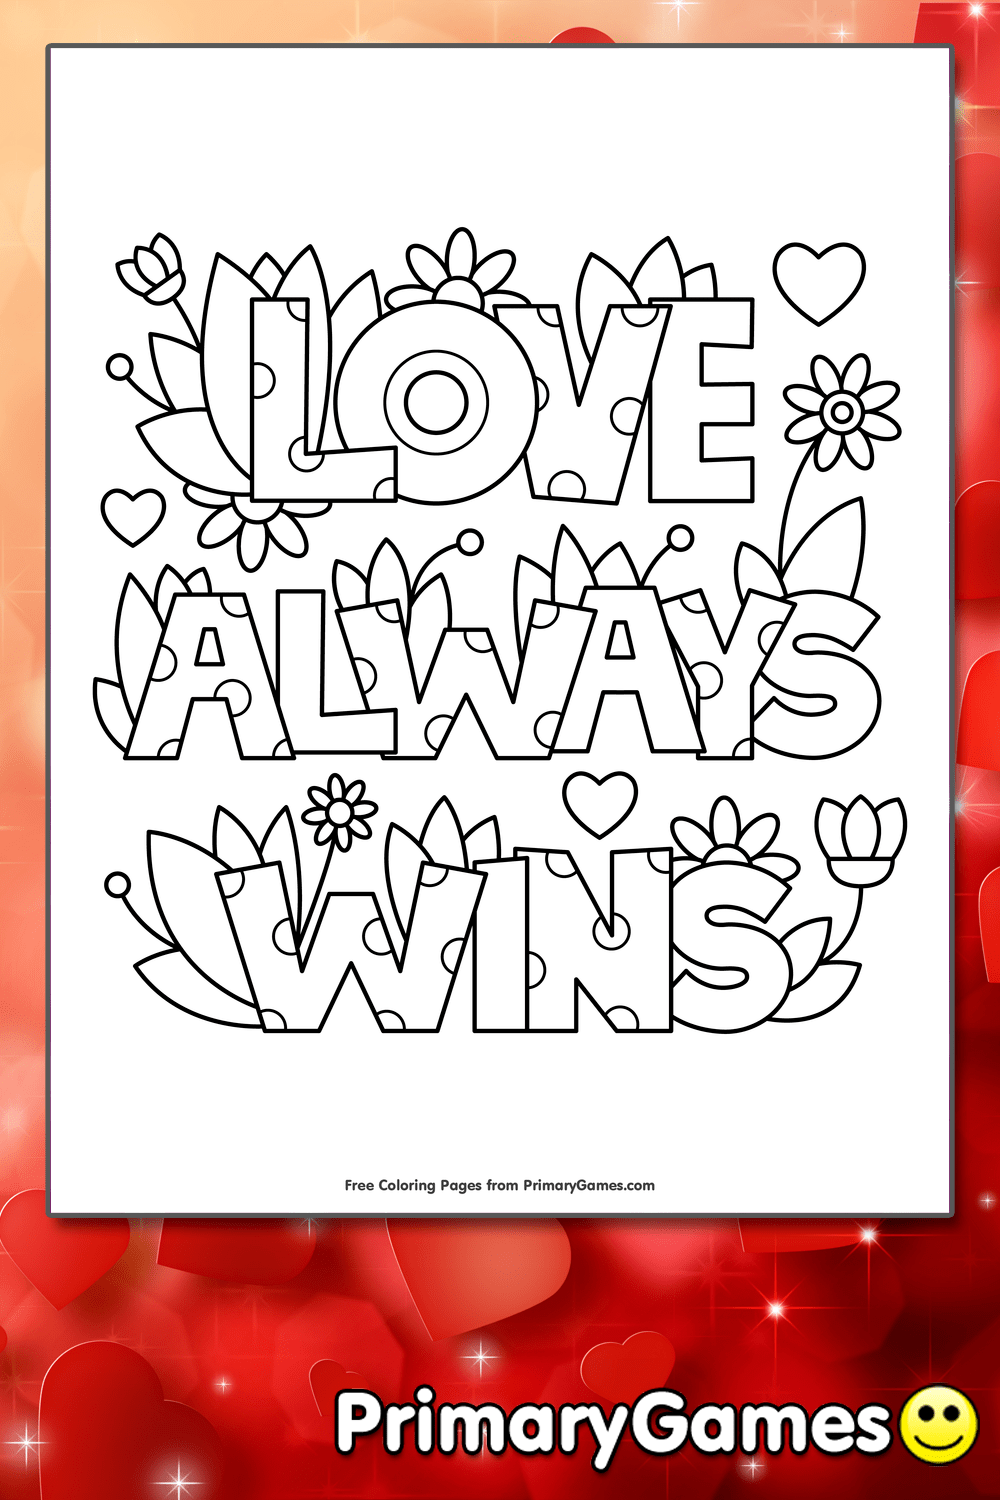 Love Always Wins Coloring Page Printable Valentines Day